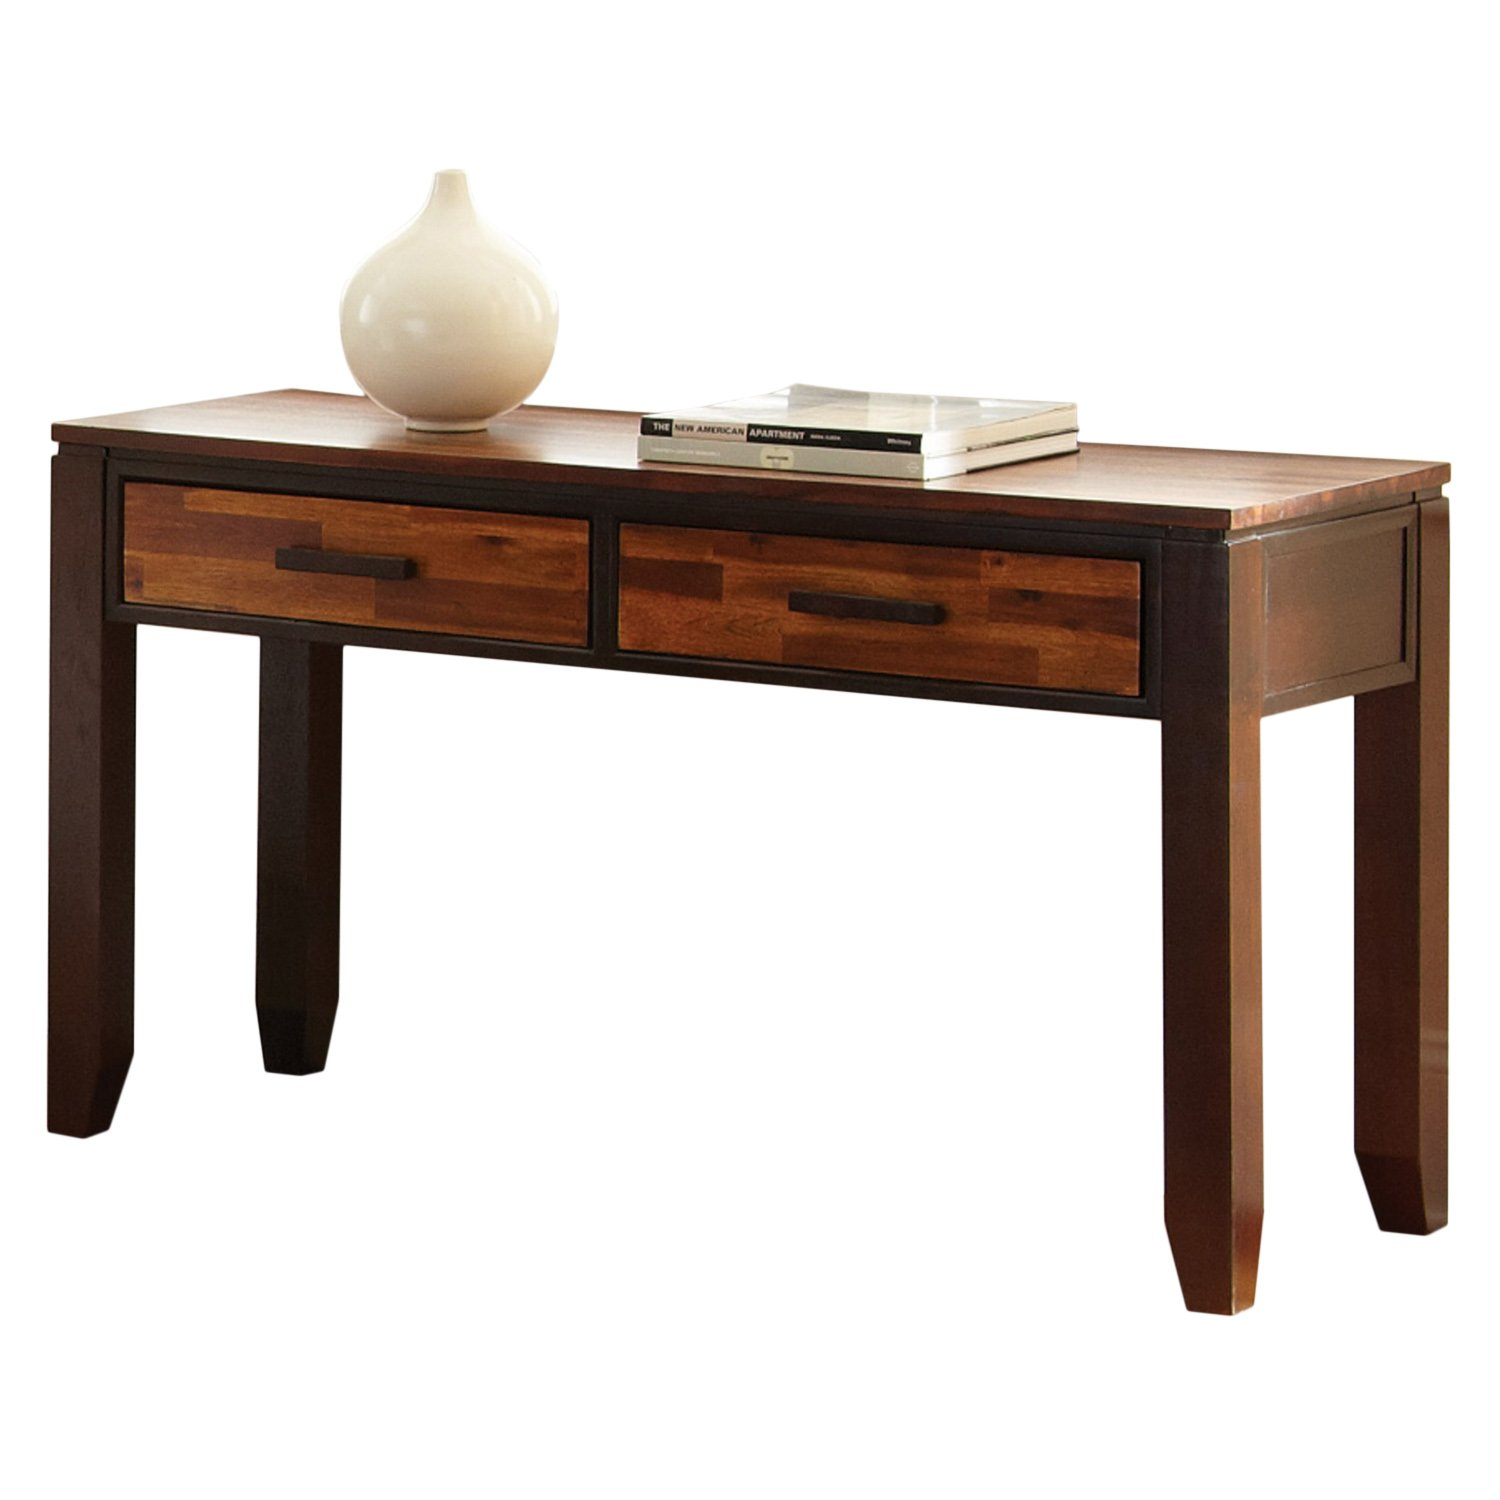 Steve Silver Company Abaco Sofa Table